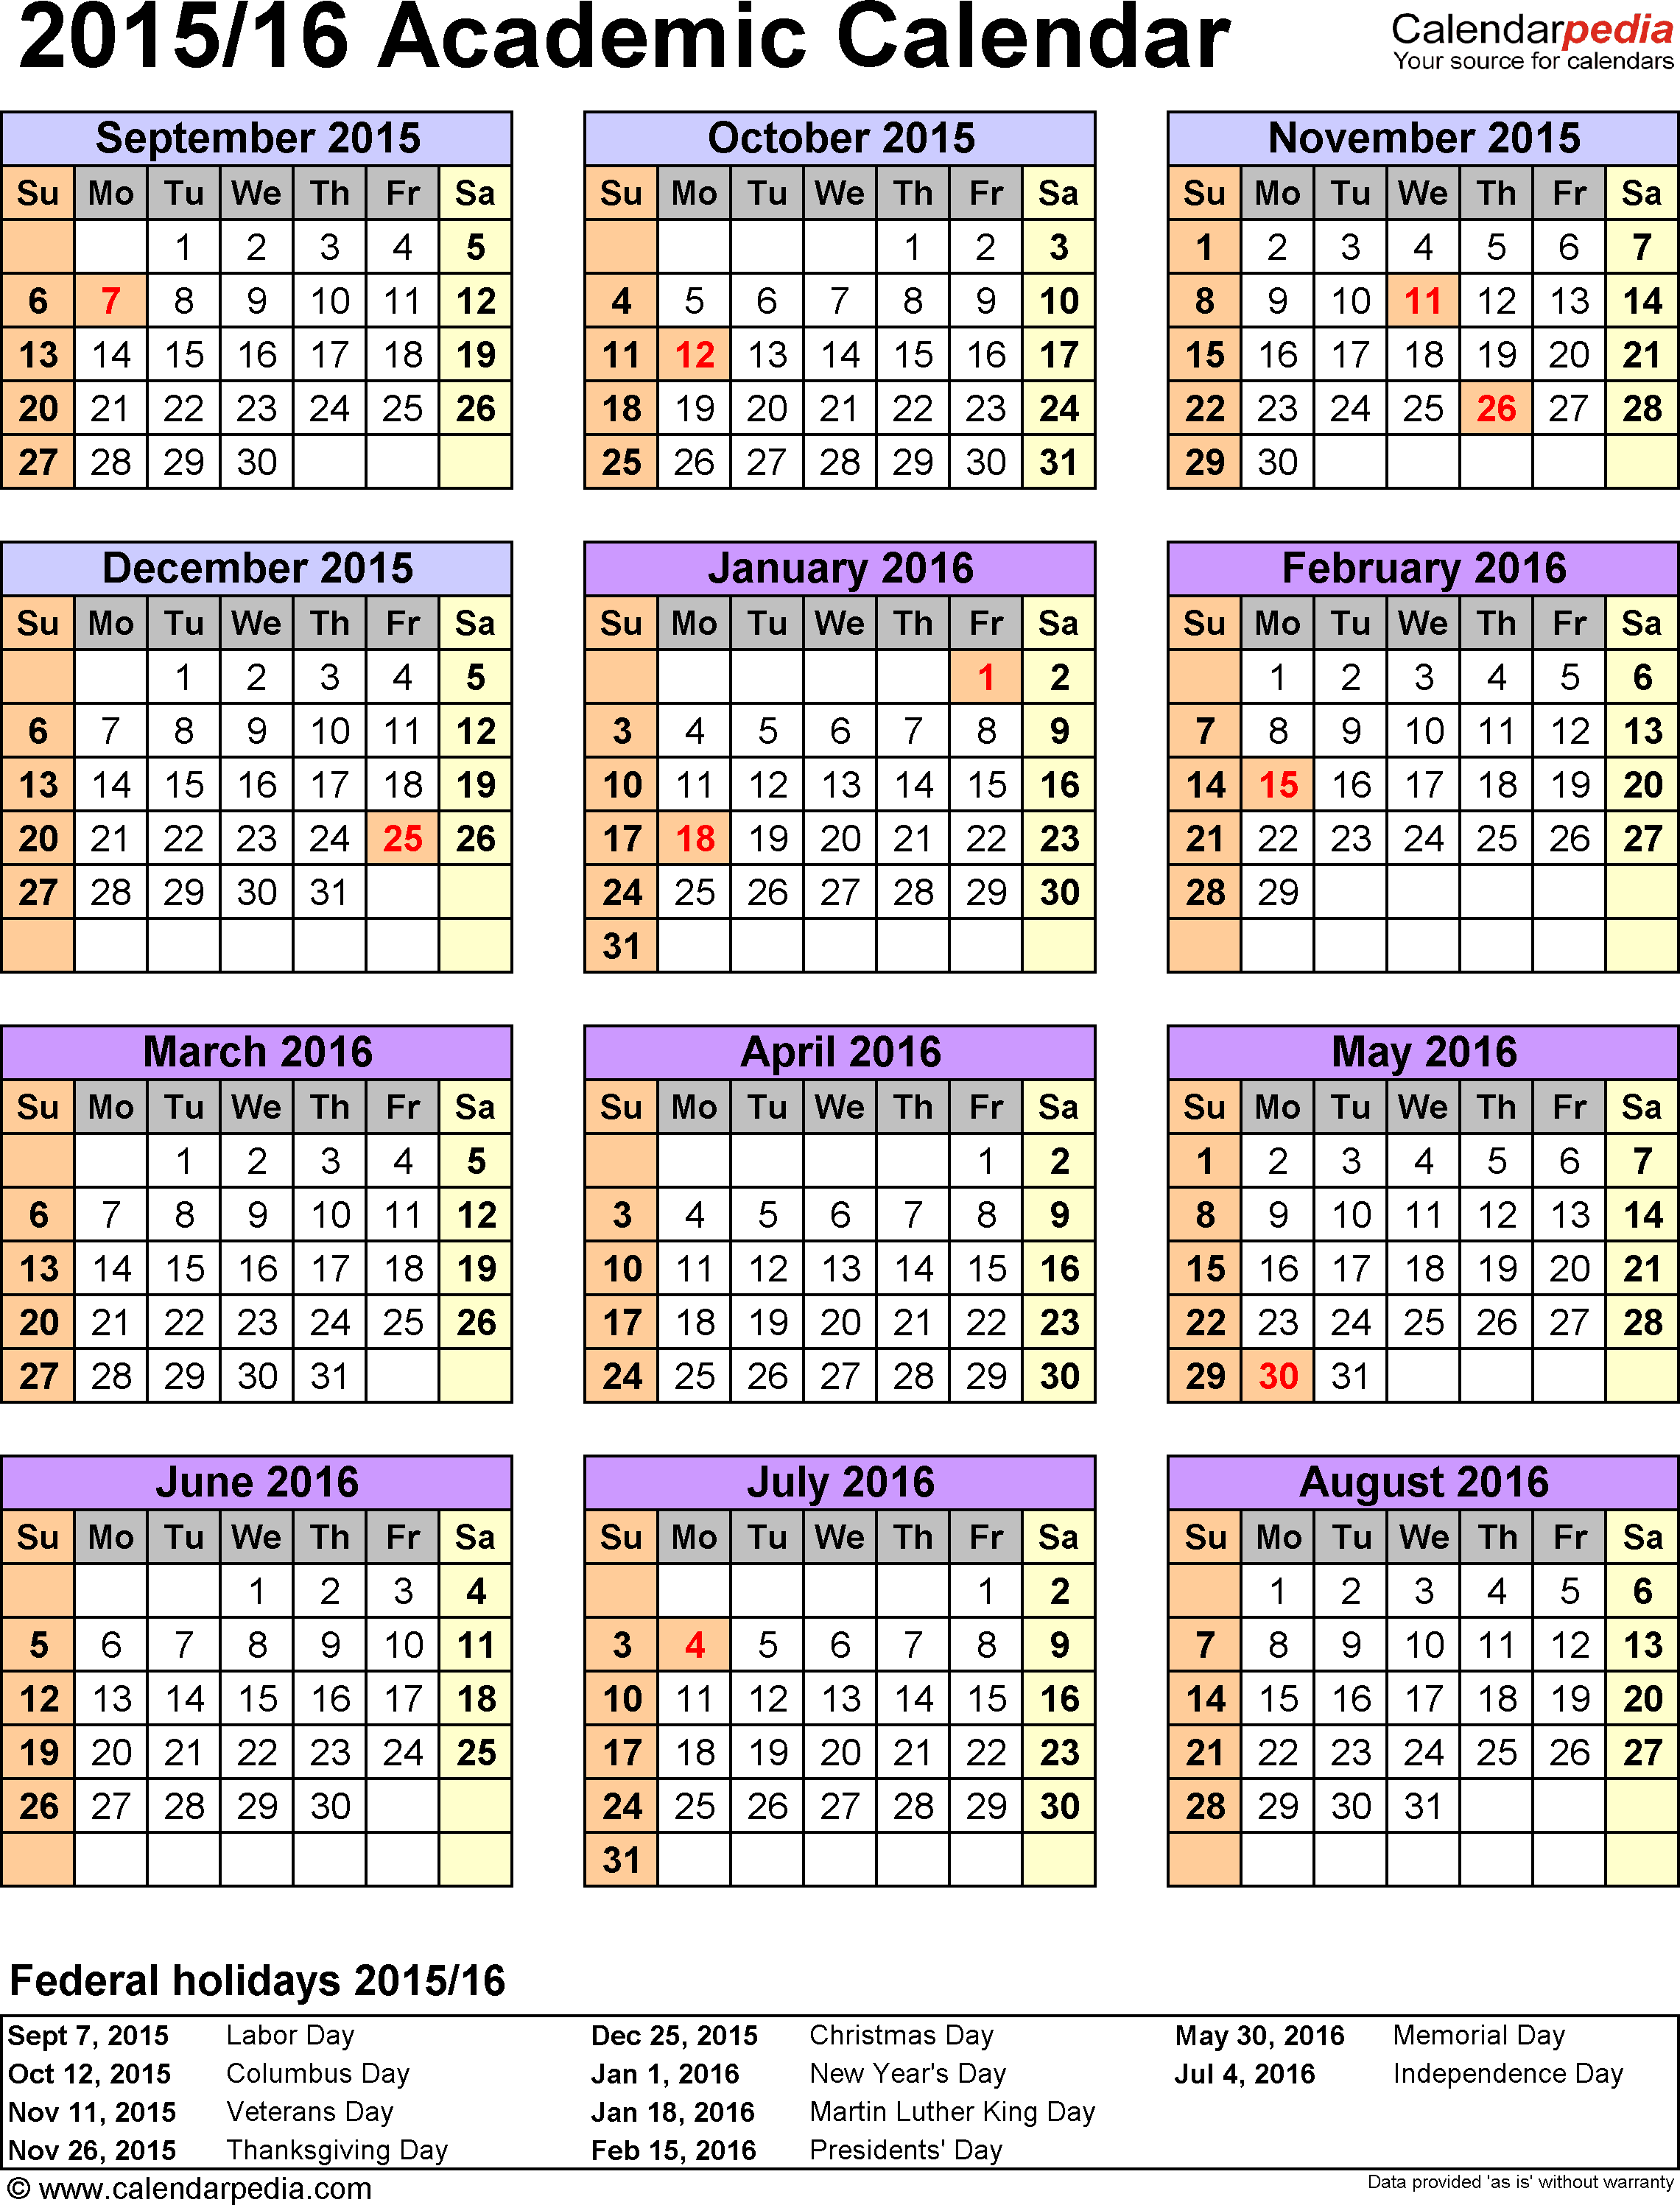 ... calendar 2015/16 for Excel, portrait, 1 page, year at a glance